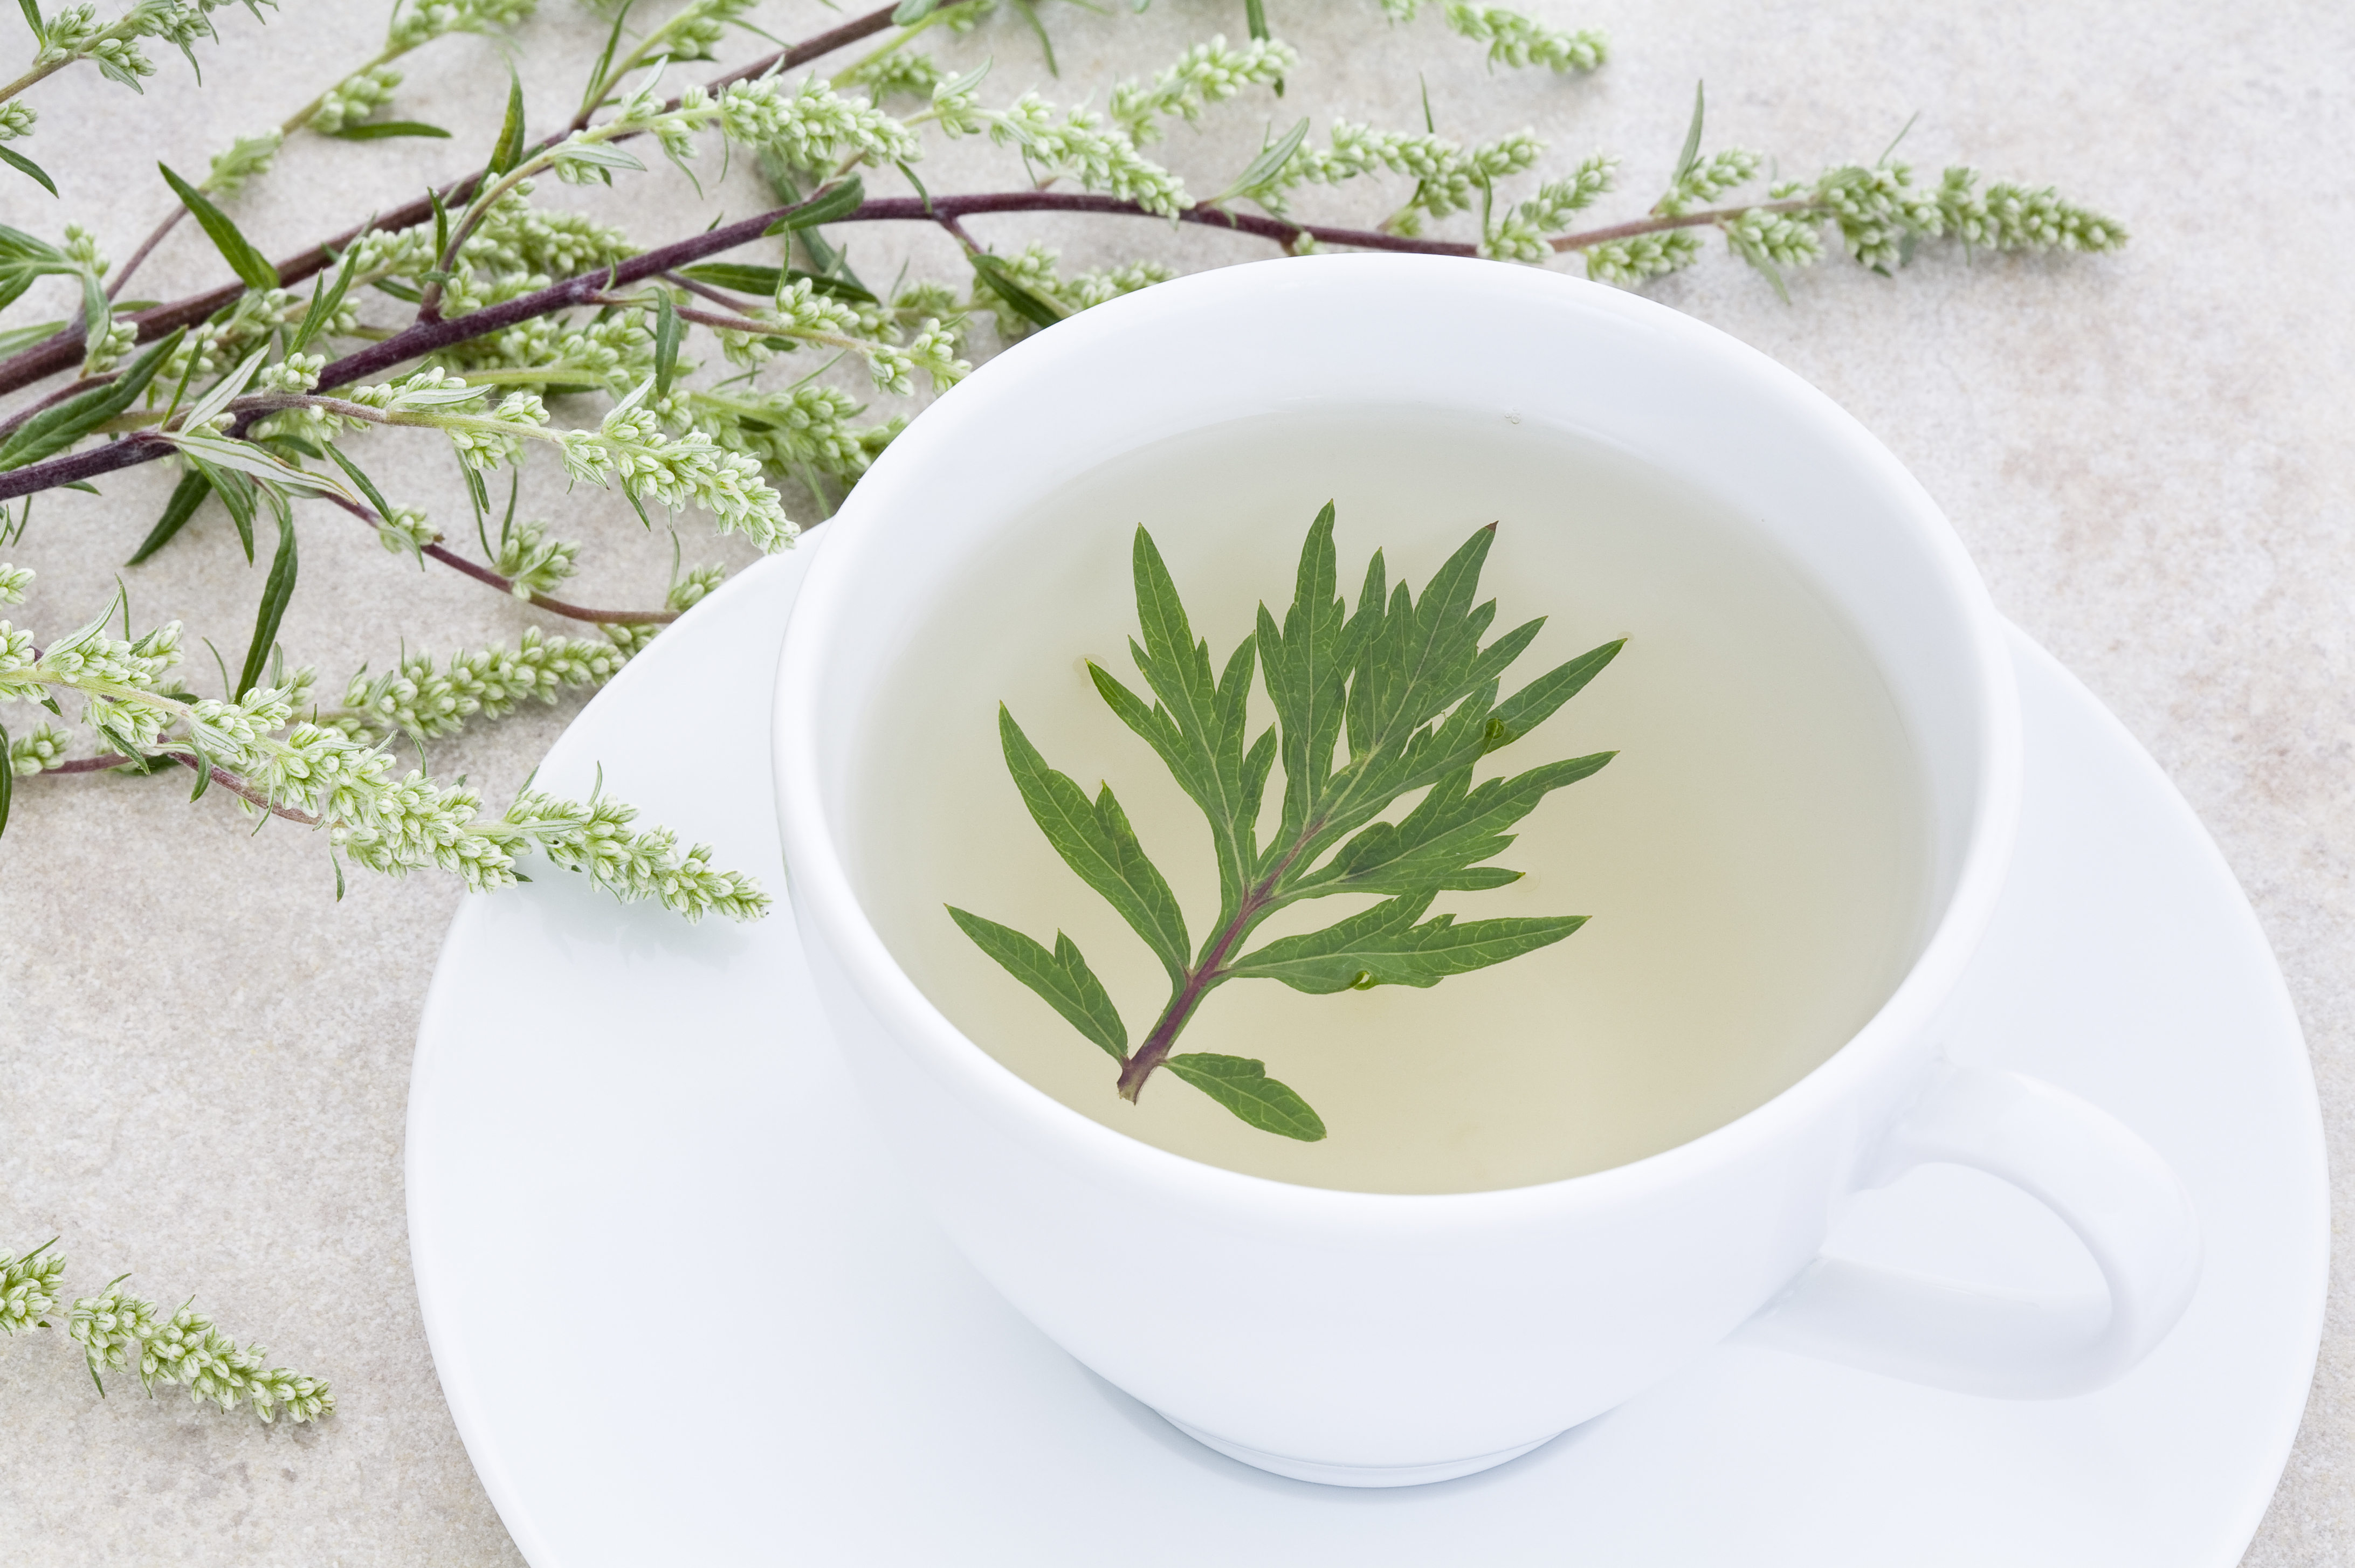 If A Worm Makes You Sick, Can This Cup Of Tea Cure You?